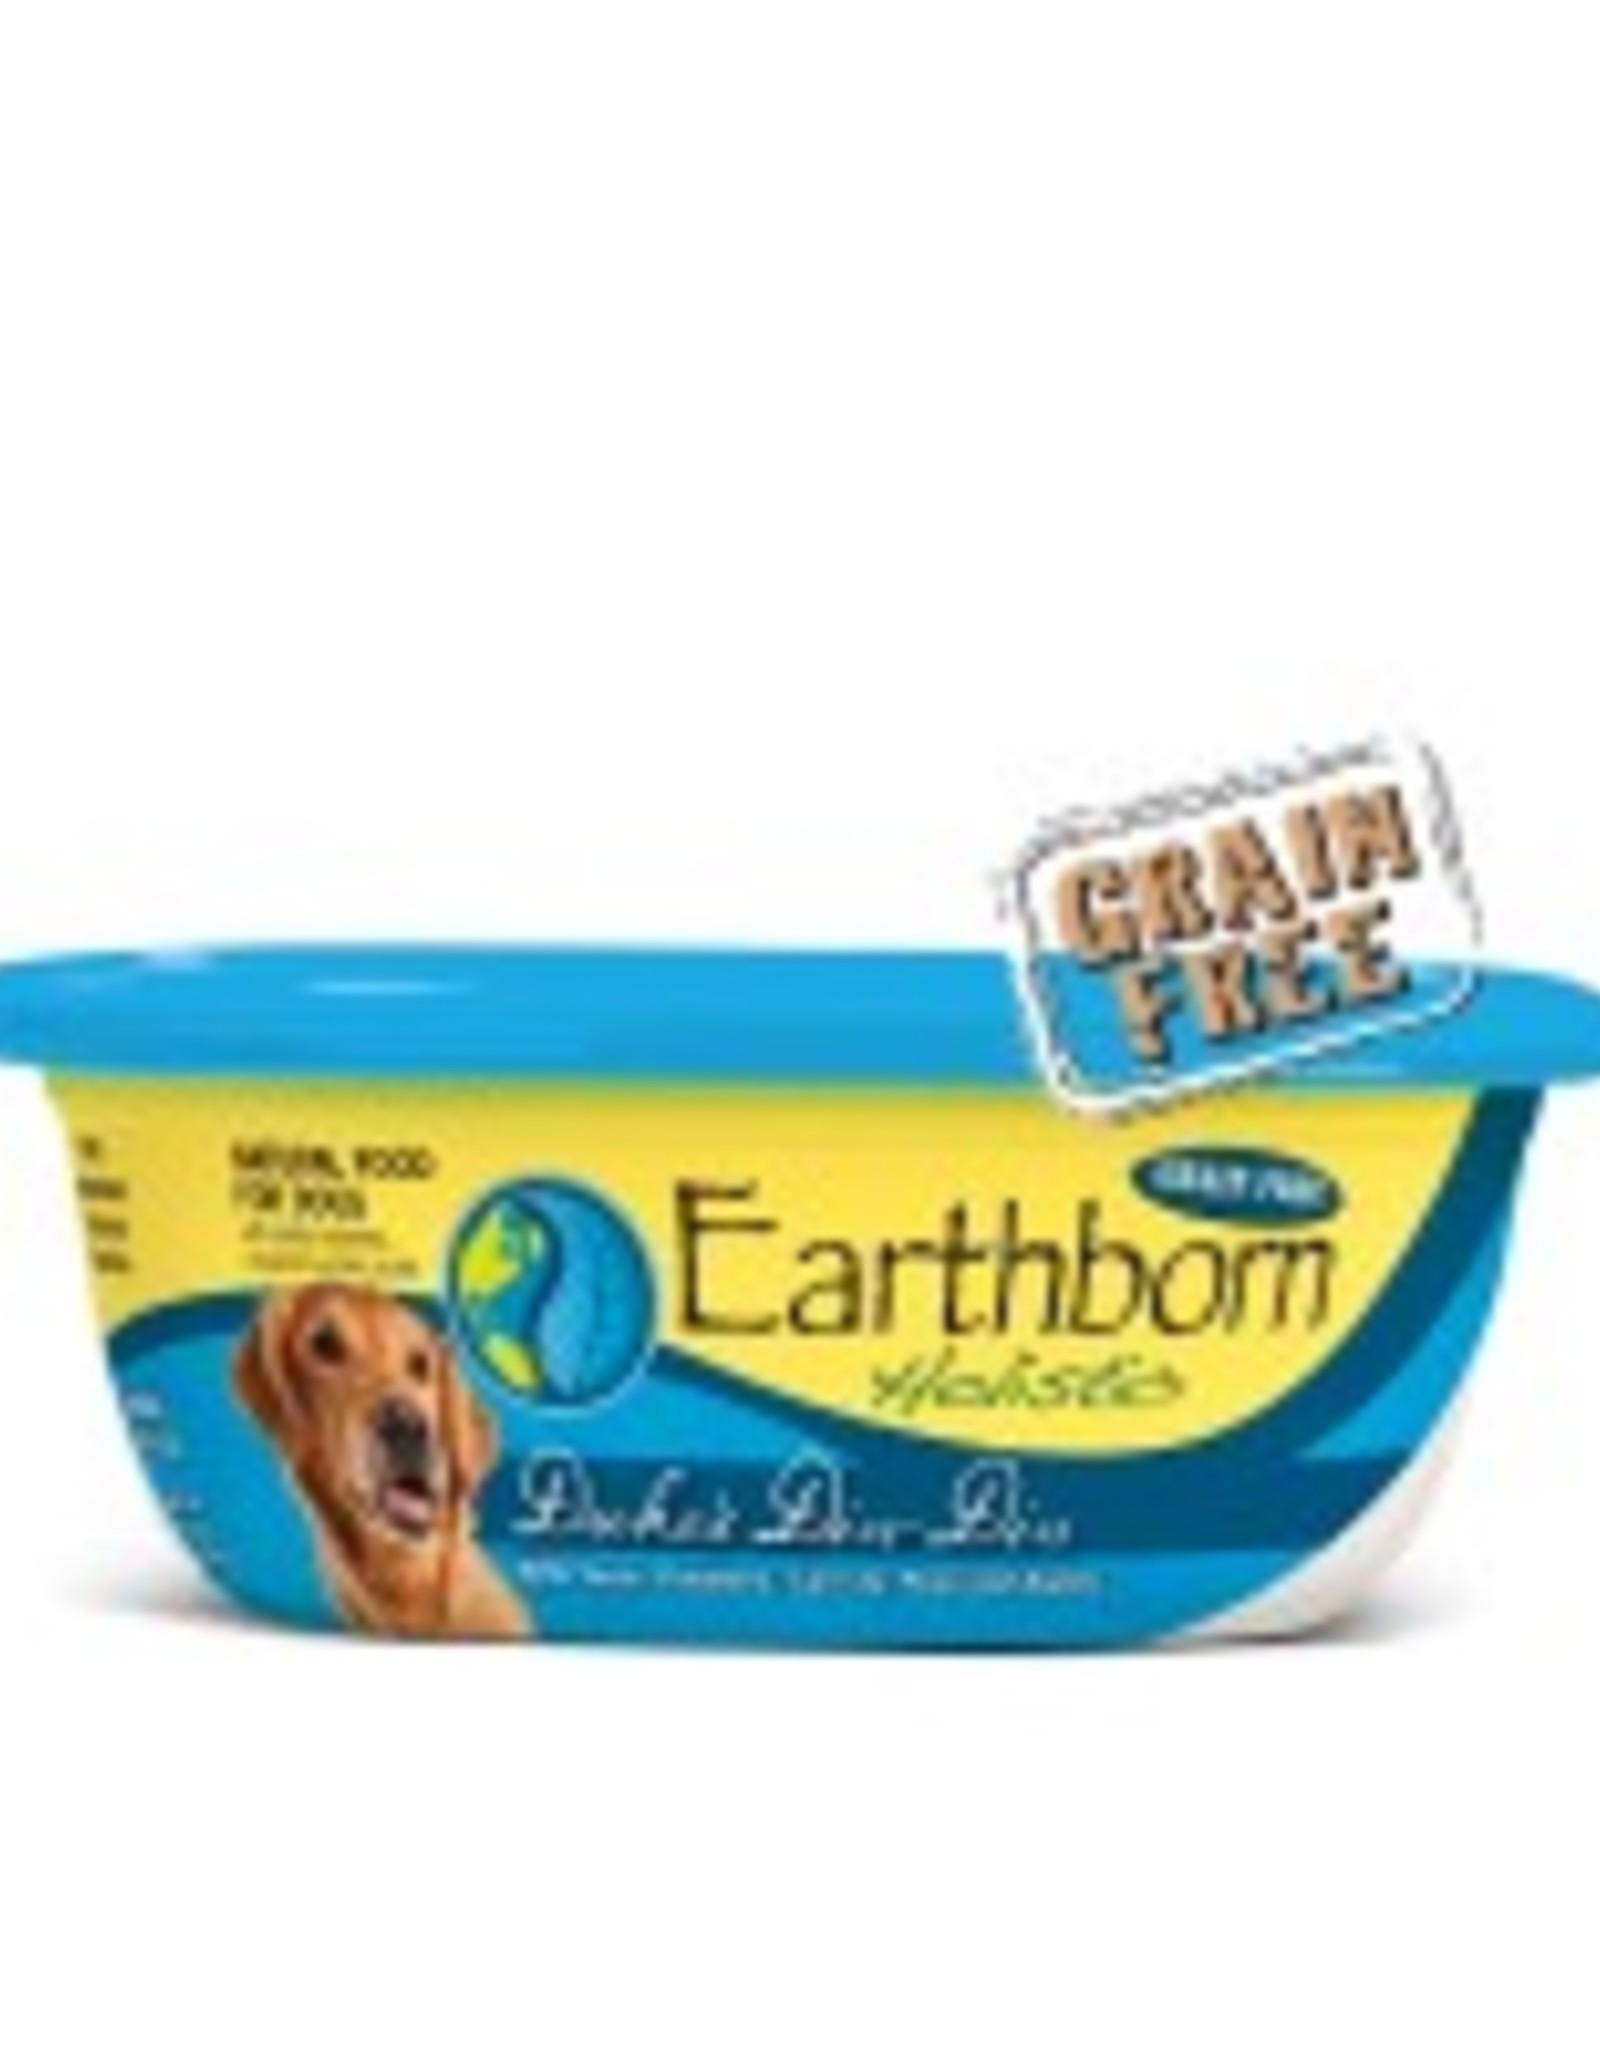 Earthborn Duke's Din Din Stew Grain-Free Natural Moist Dog Food, 9 oz.